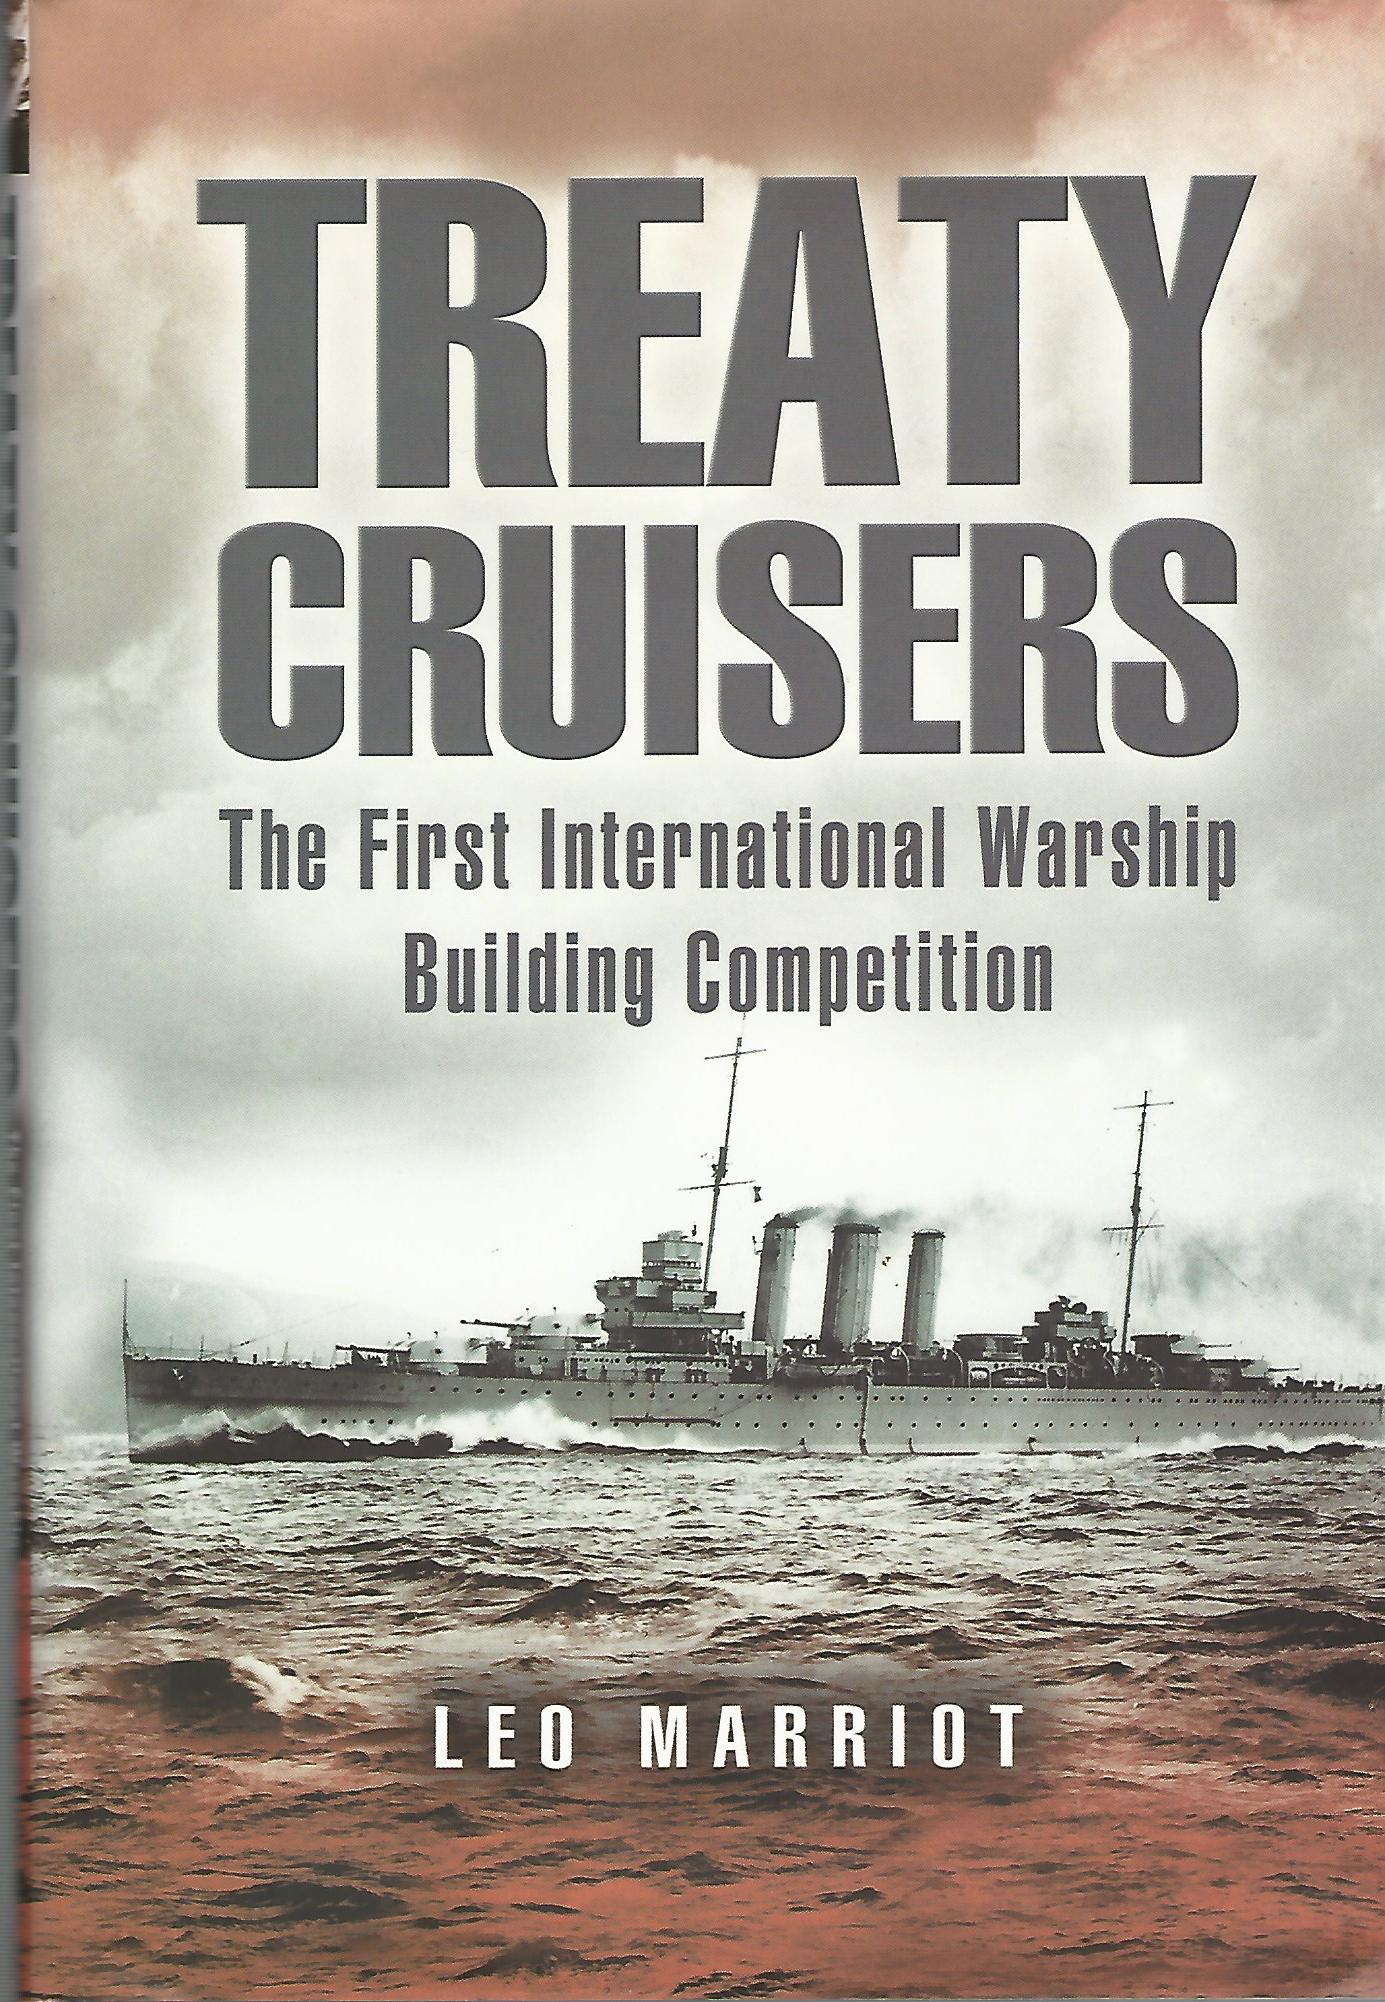 Image for Treaty Cruisers: The First International Warship Building Competition